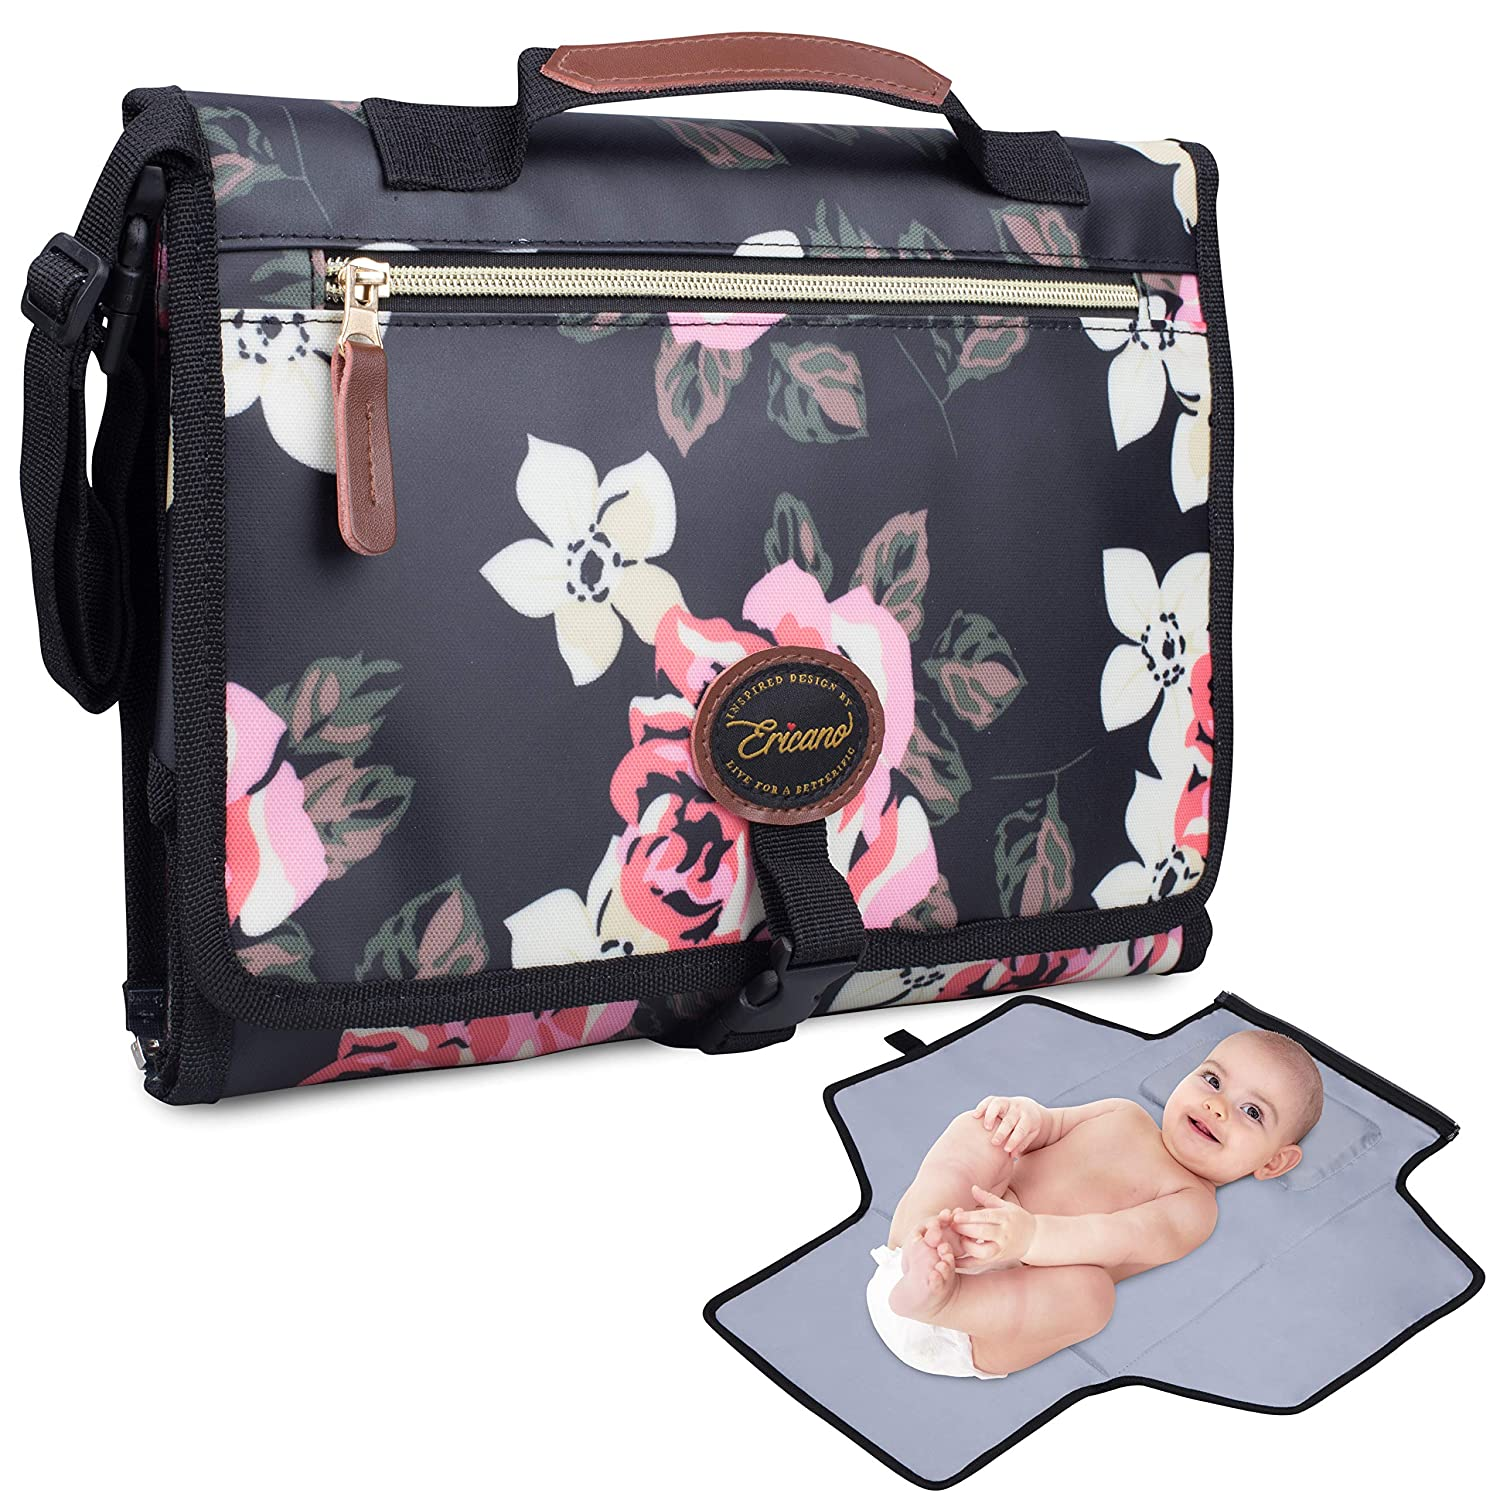 Portable Baby Diaper Changing Pad Built-In Thick Cushion Pillow - Foldable Clutch Bag Travel Changing Mat with Detachable Pockets - Black Pink Floral Rose